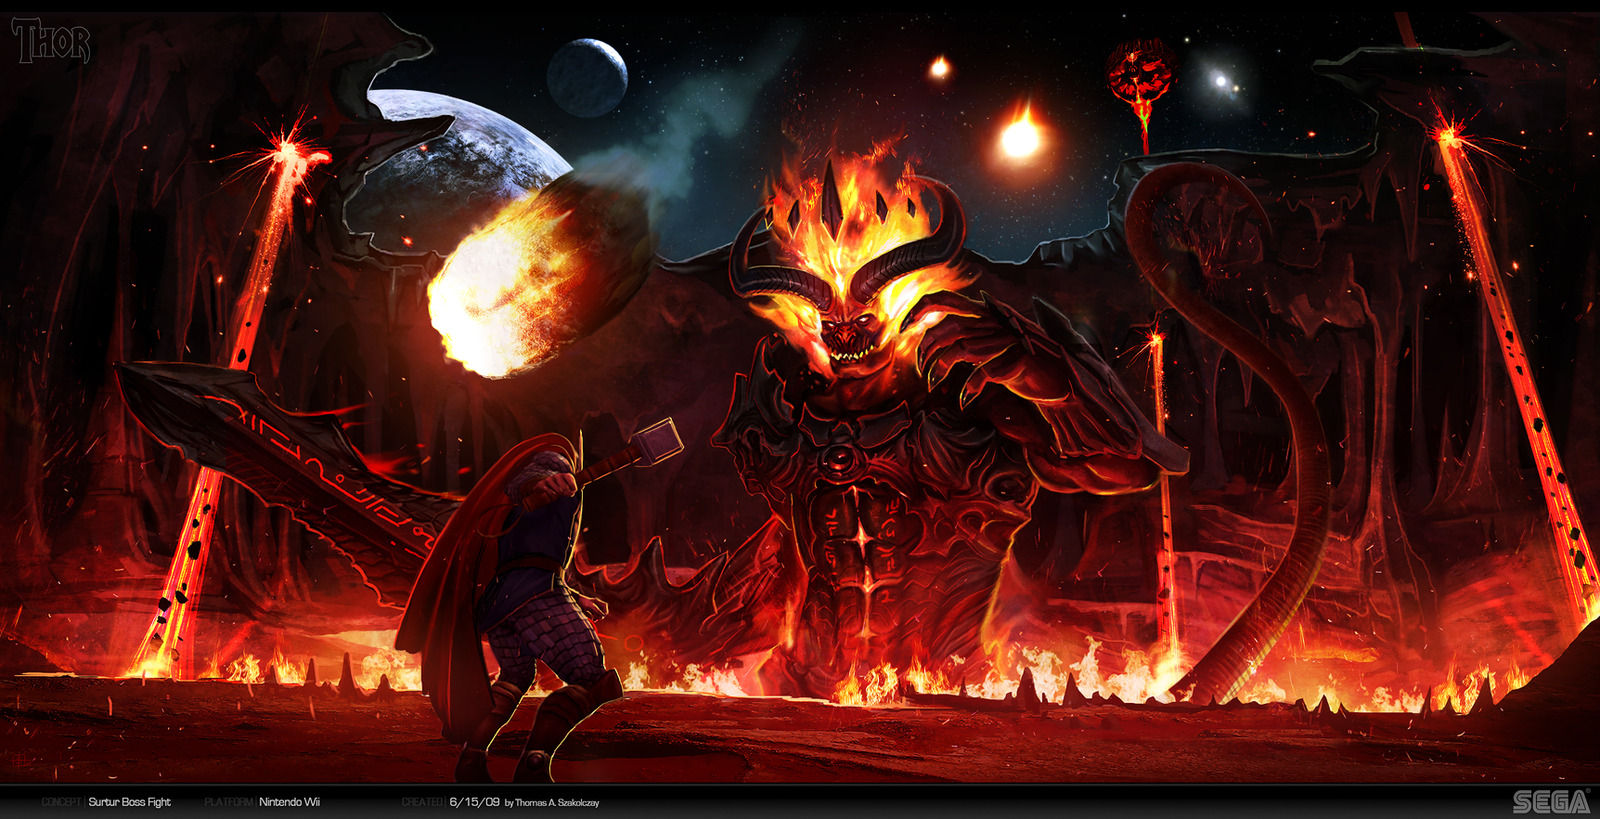 http://screenrant.com/wp-content/uploads/Thor-vs-Surtur.jpg